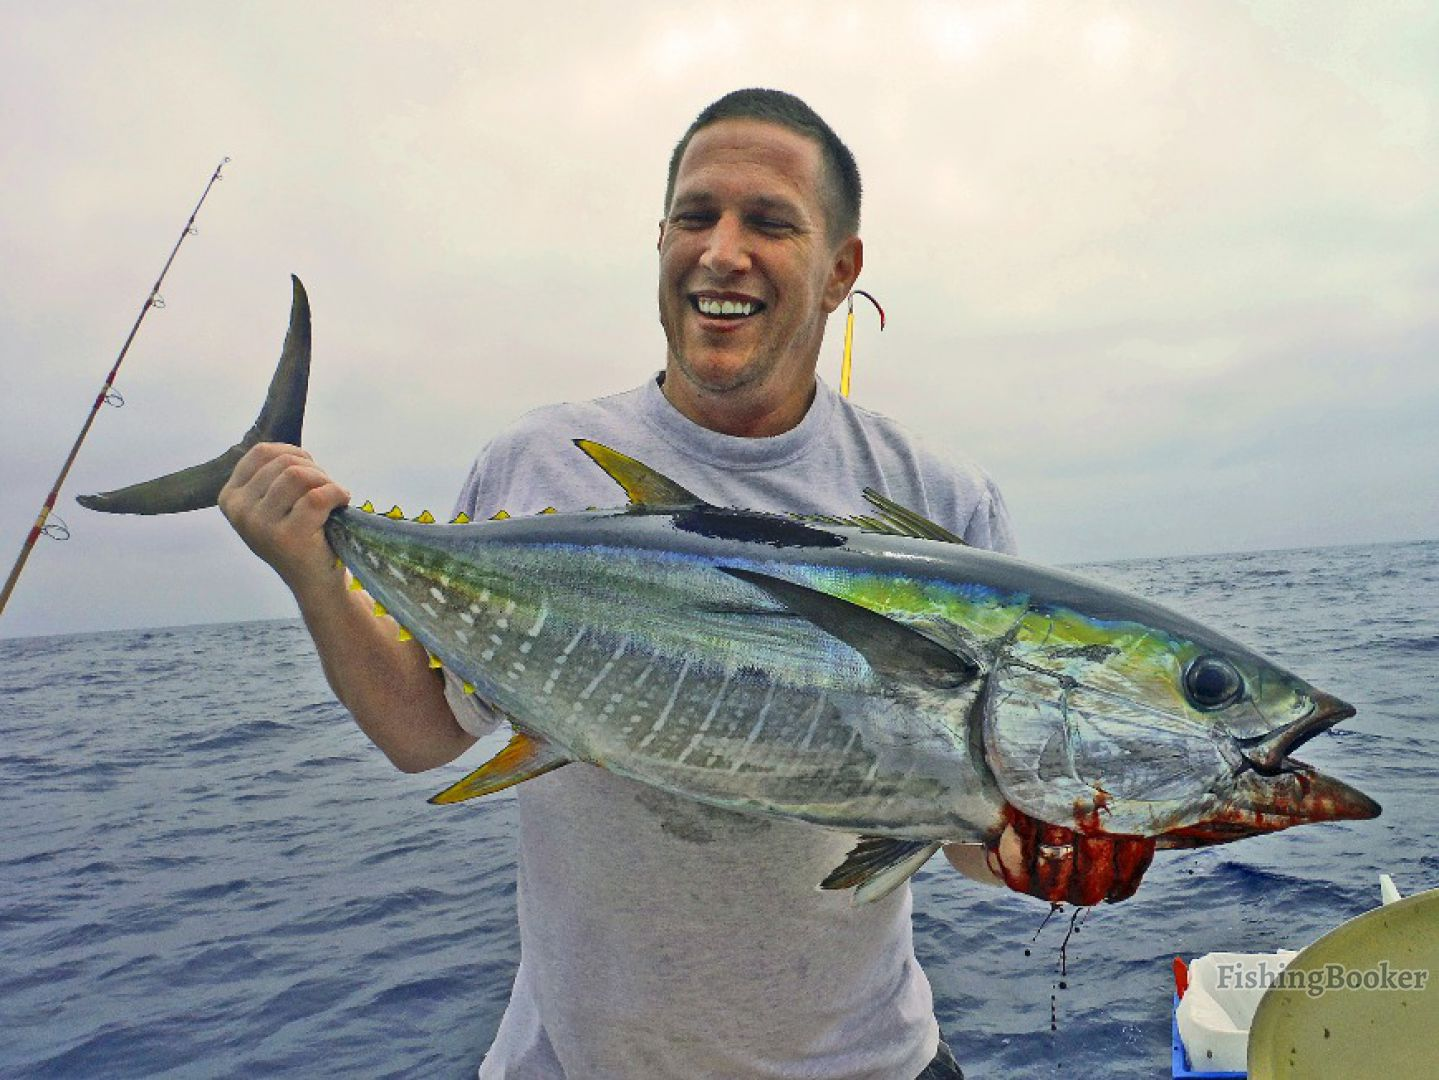 Reel to reef charters heritage dana point california for Dana point fishing